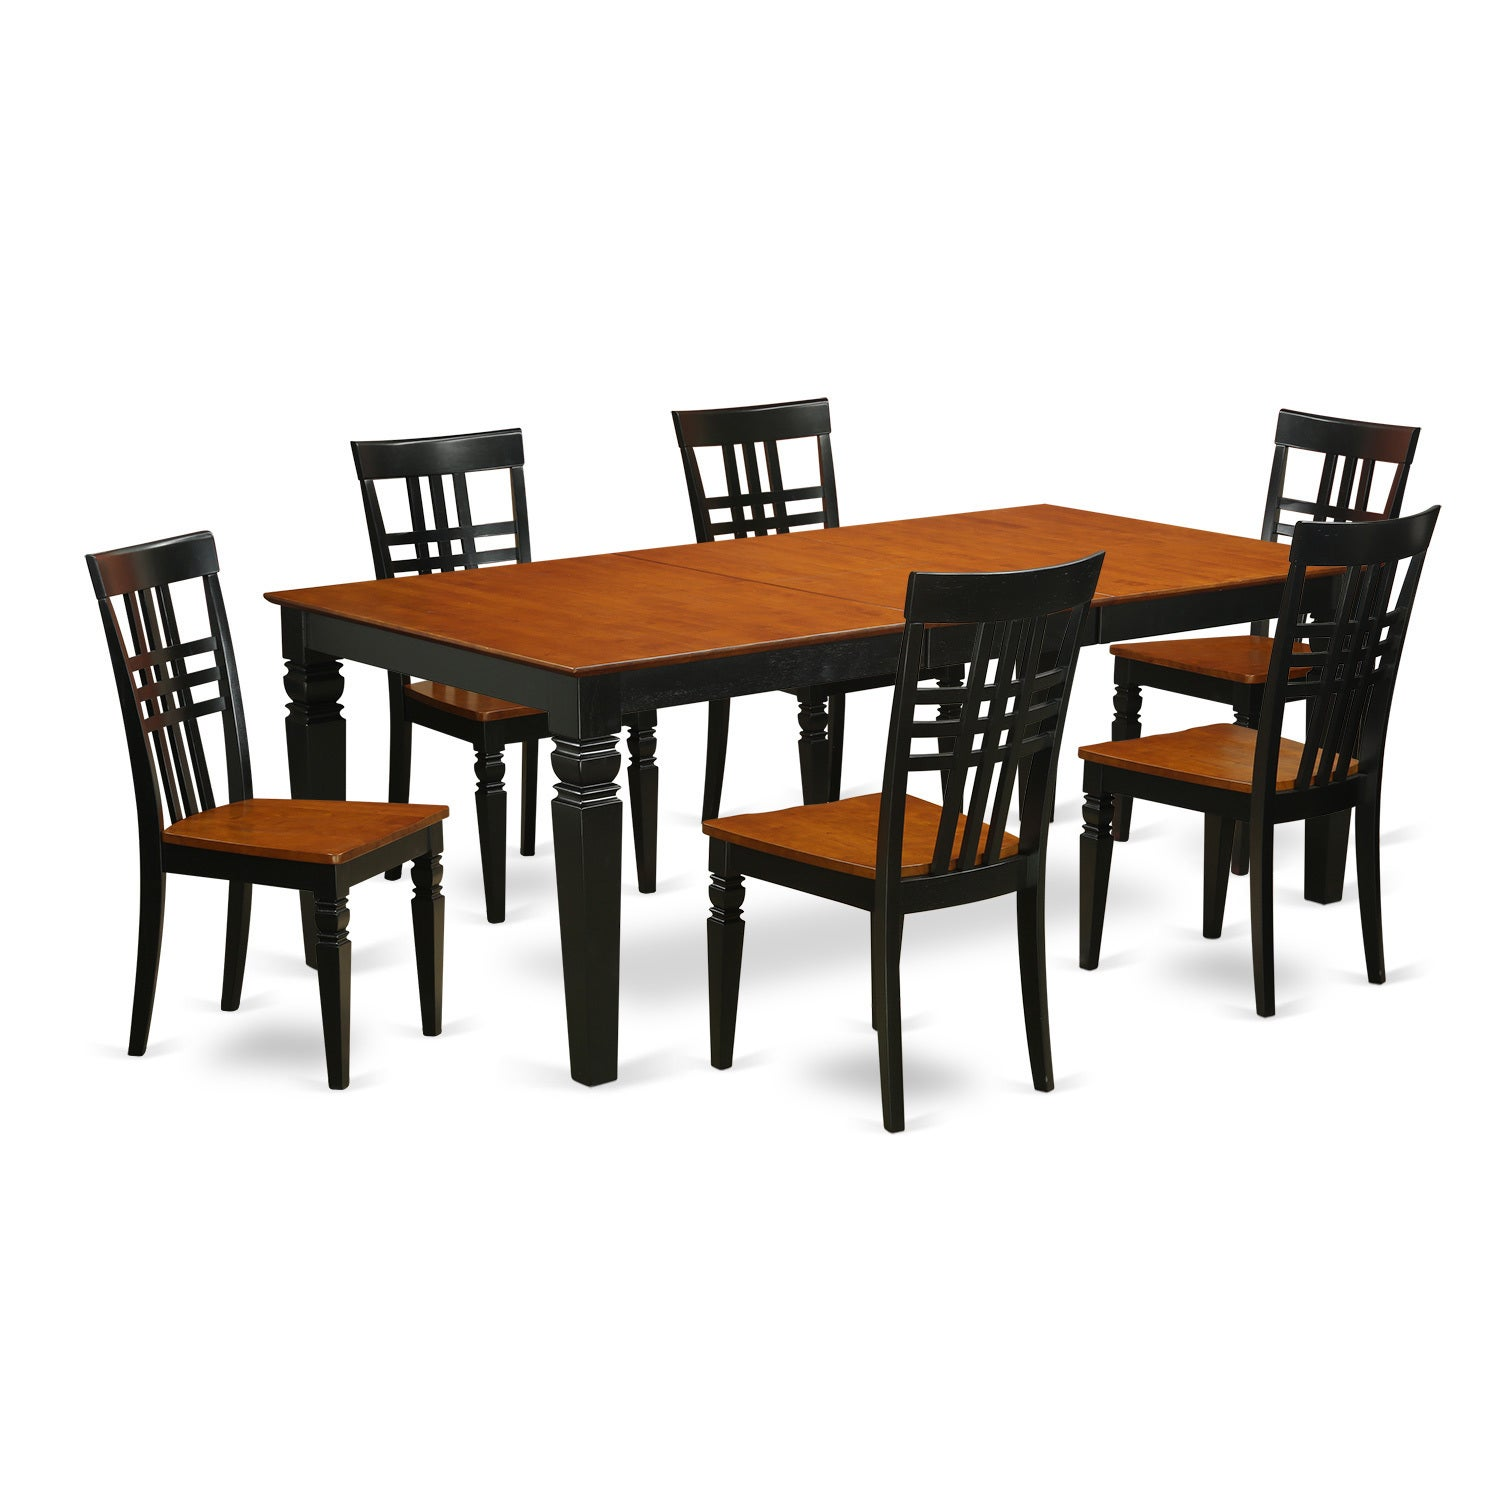 Logan Wood Extendable Dining Table and 6 Chairs Set (Blac...